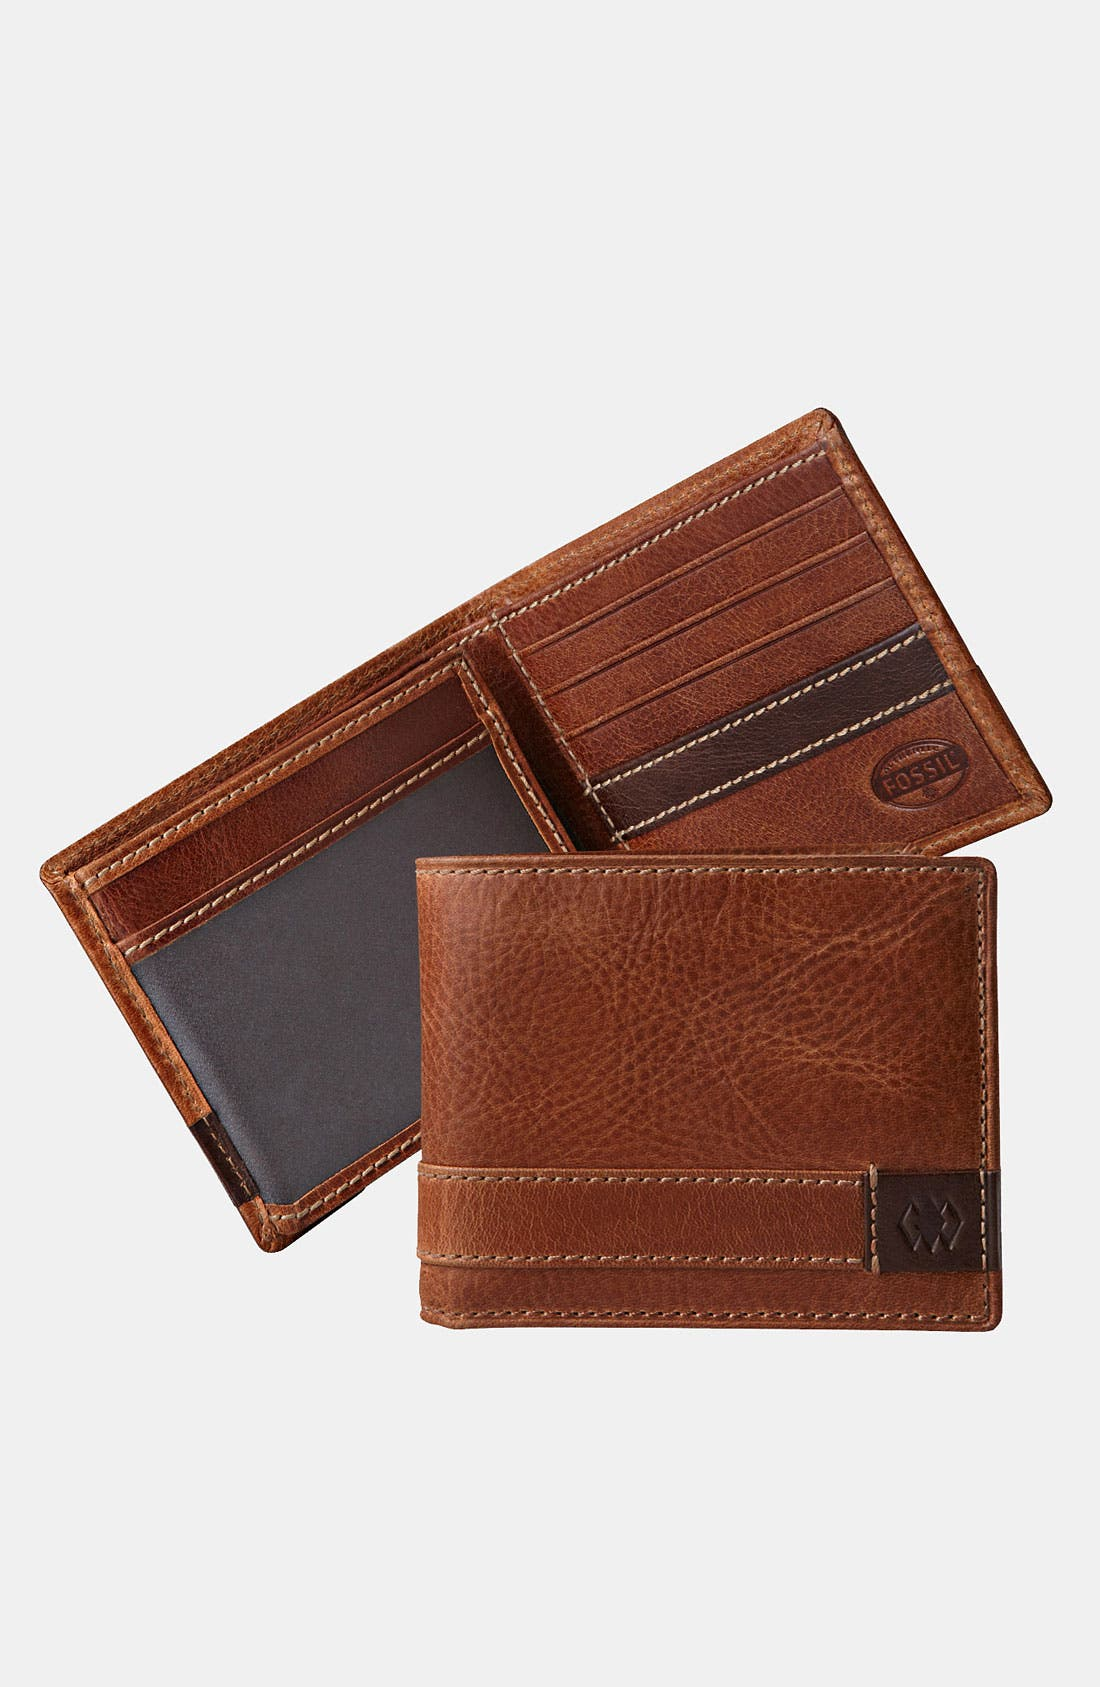 Alternate Image 1 Selected - Fossil 'Madison' Travel Wallet